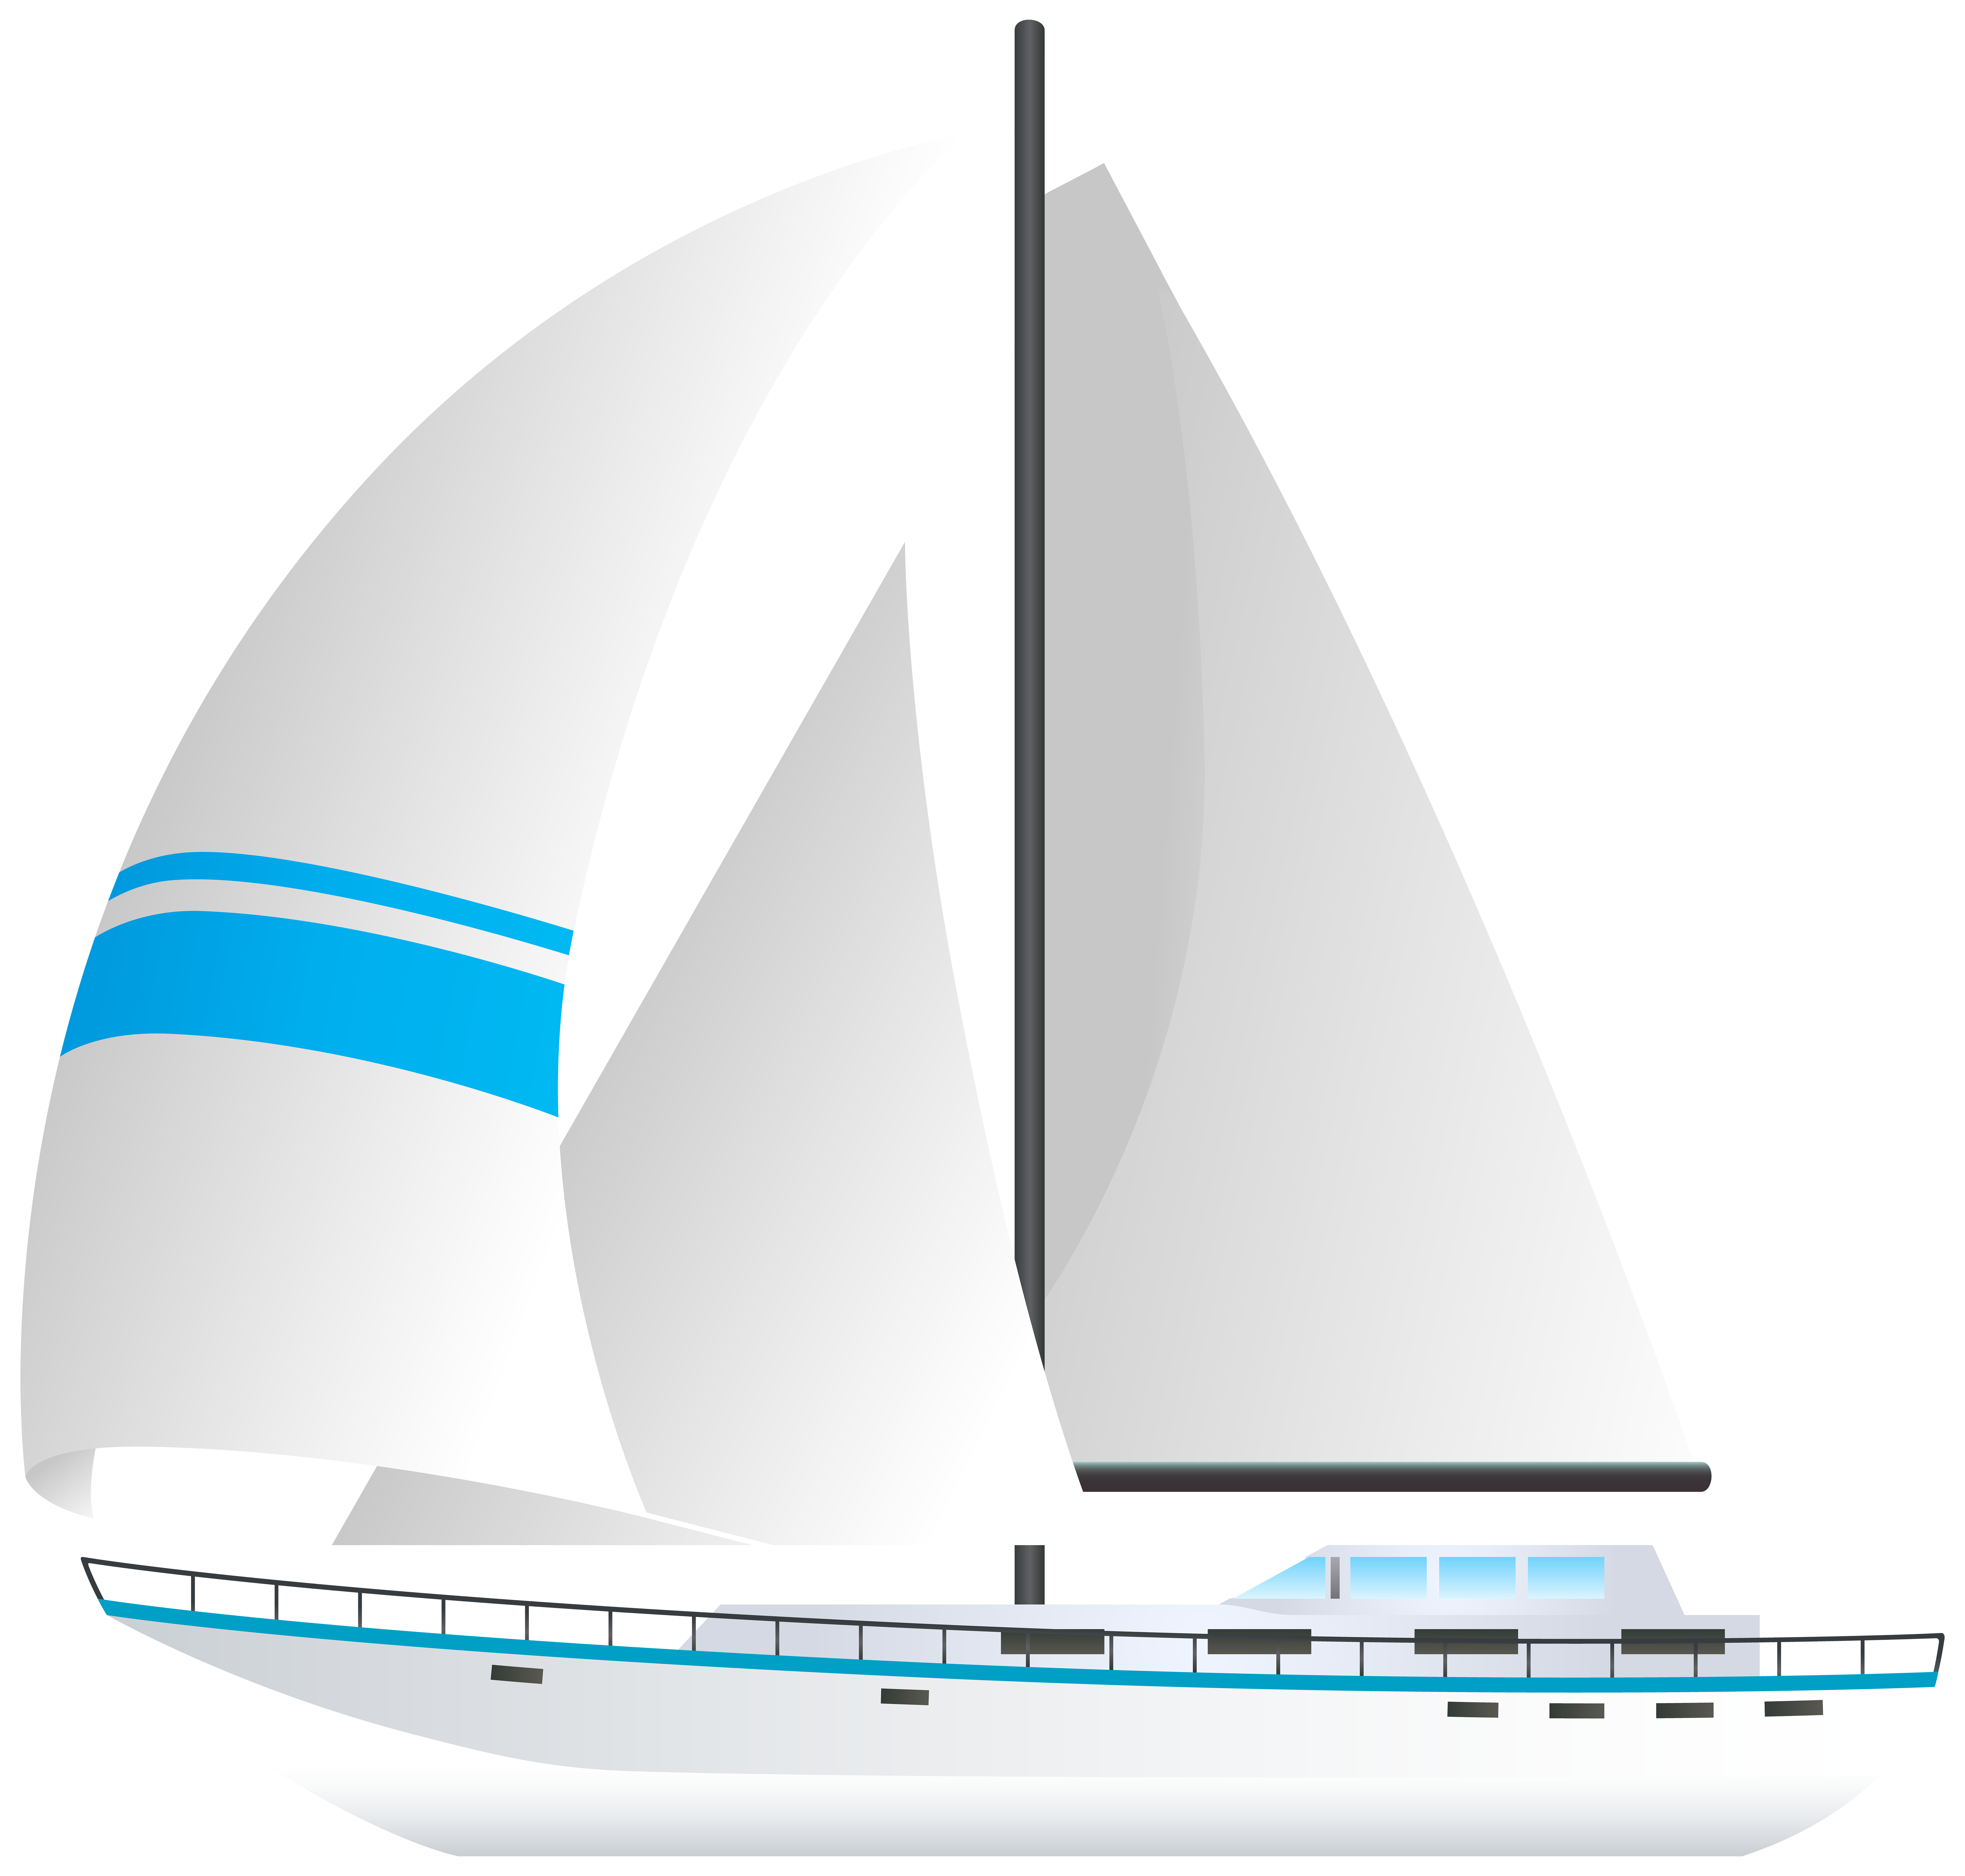 jpg library Yacht clipart transportation. Sailboat png transparent clip